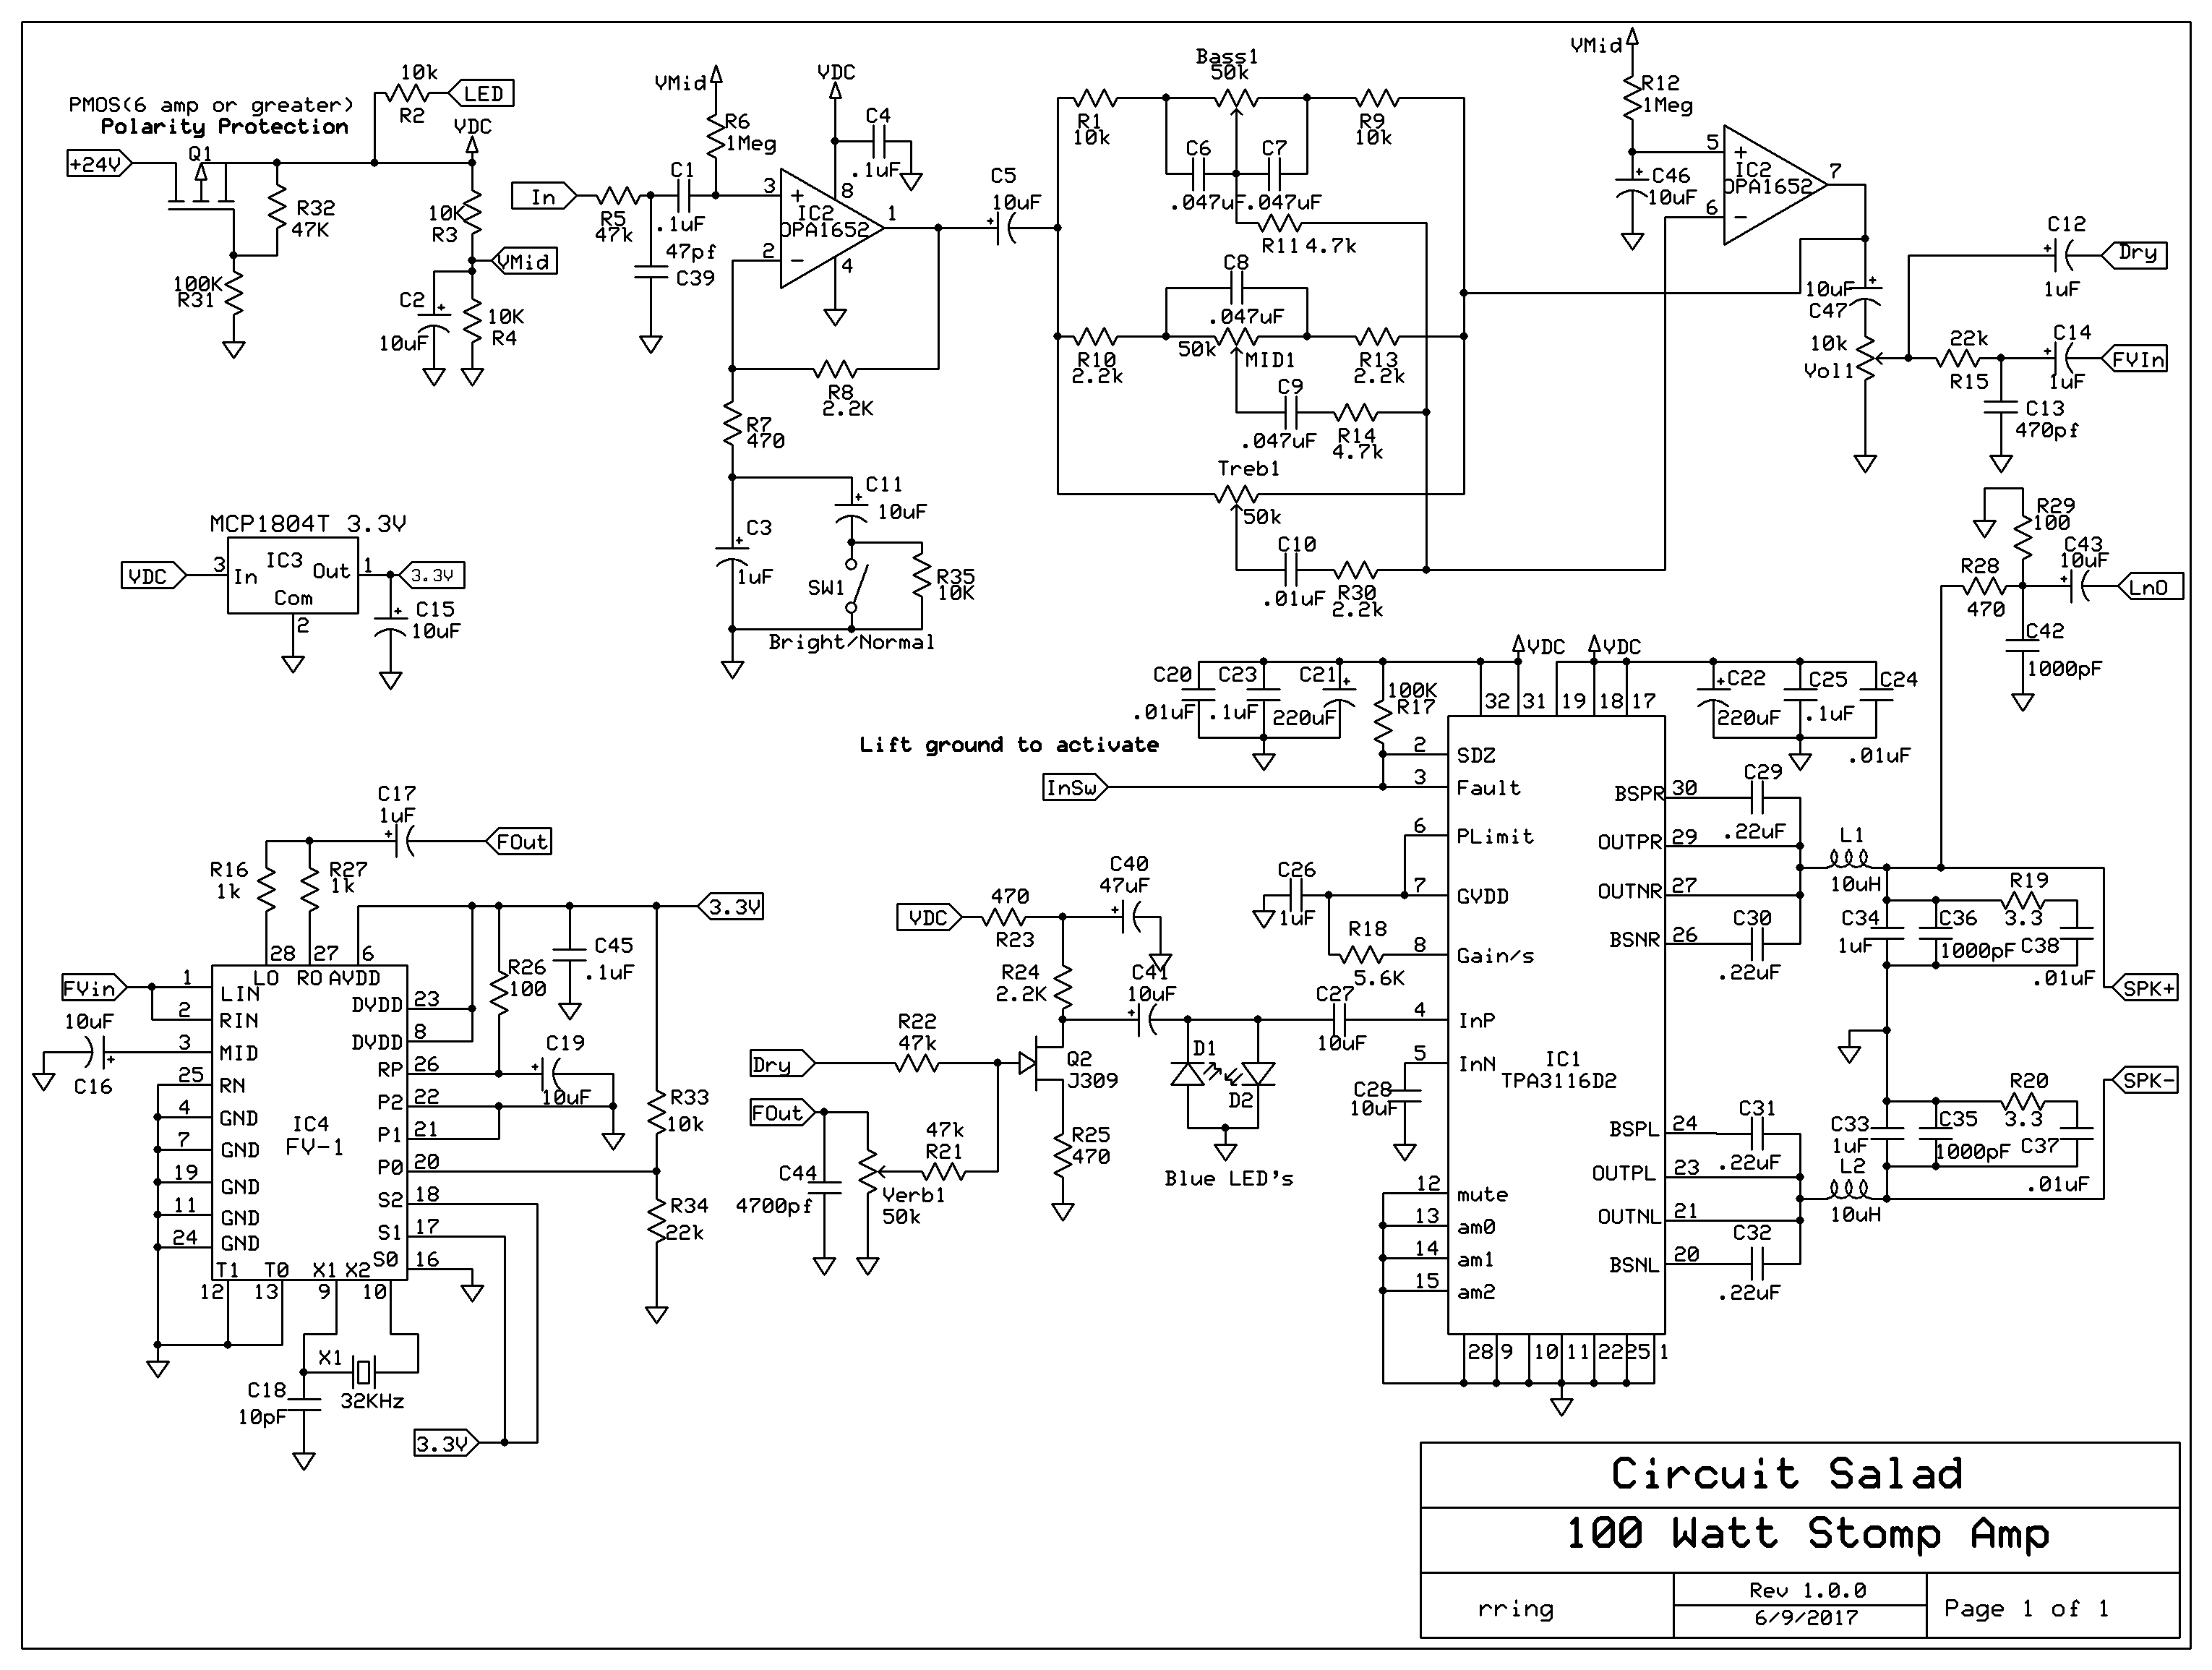 Dod Wiring Diagram Database Simple Schematics For Trucks Schema Gmc Fuse Box Diagrams Juice